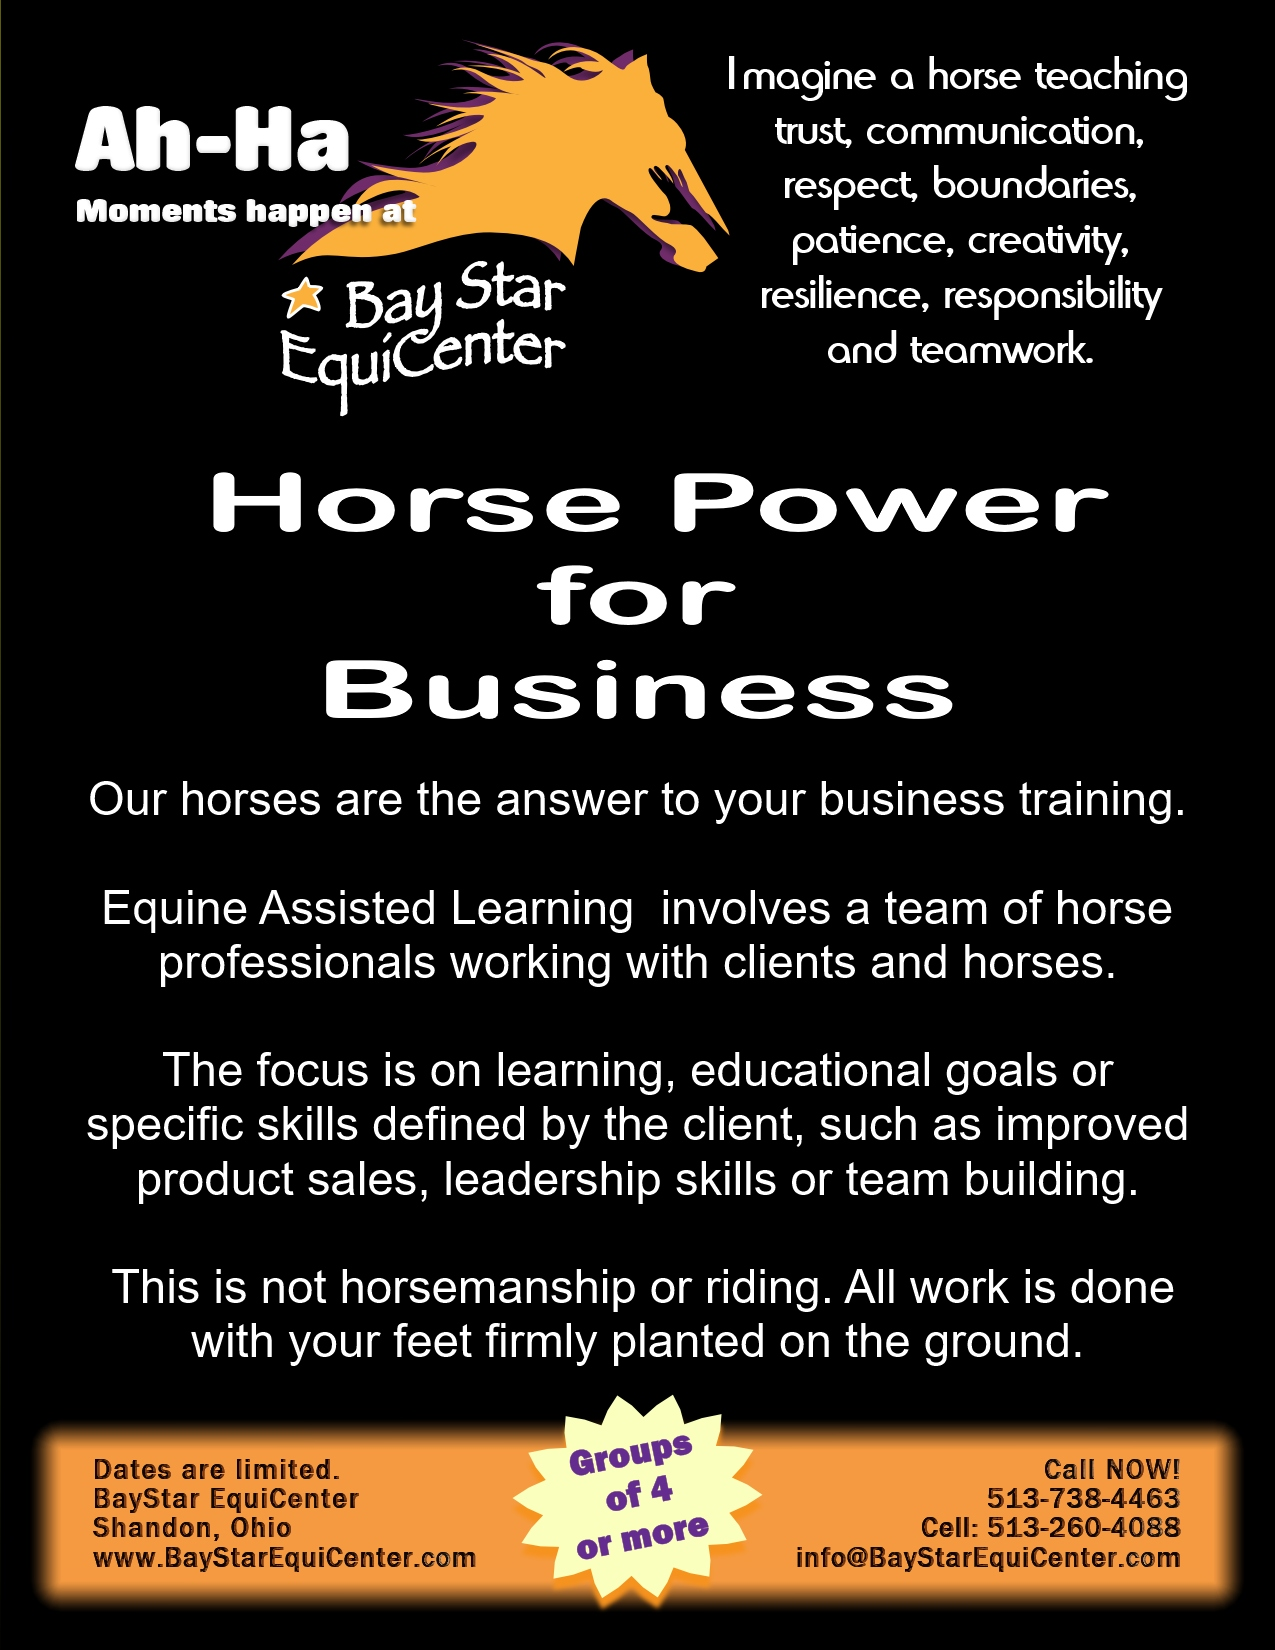 Horse Power for Business